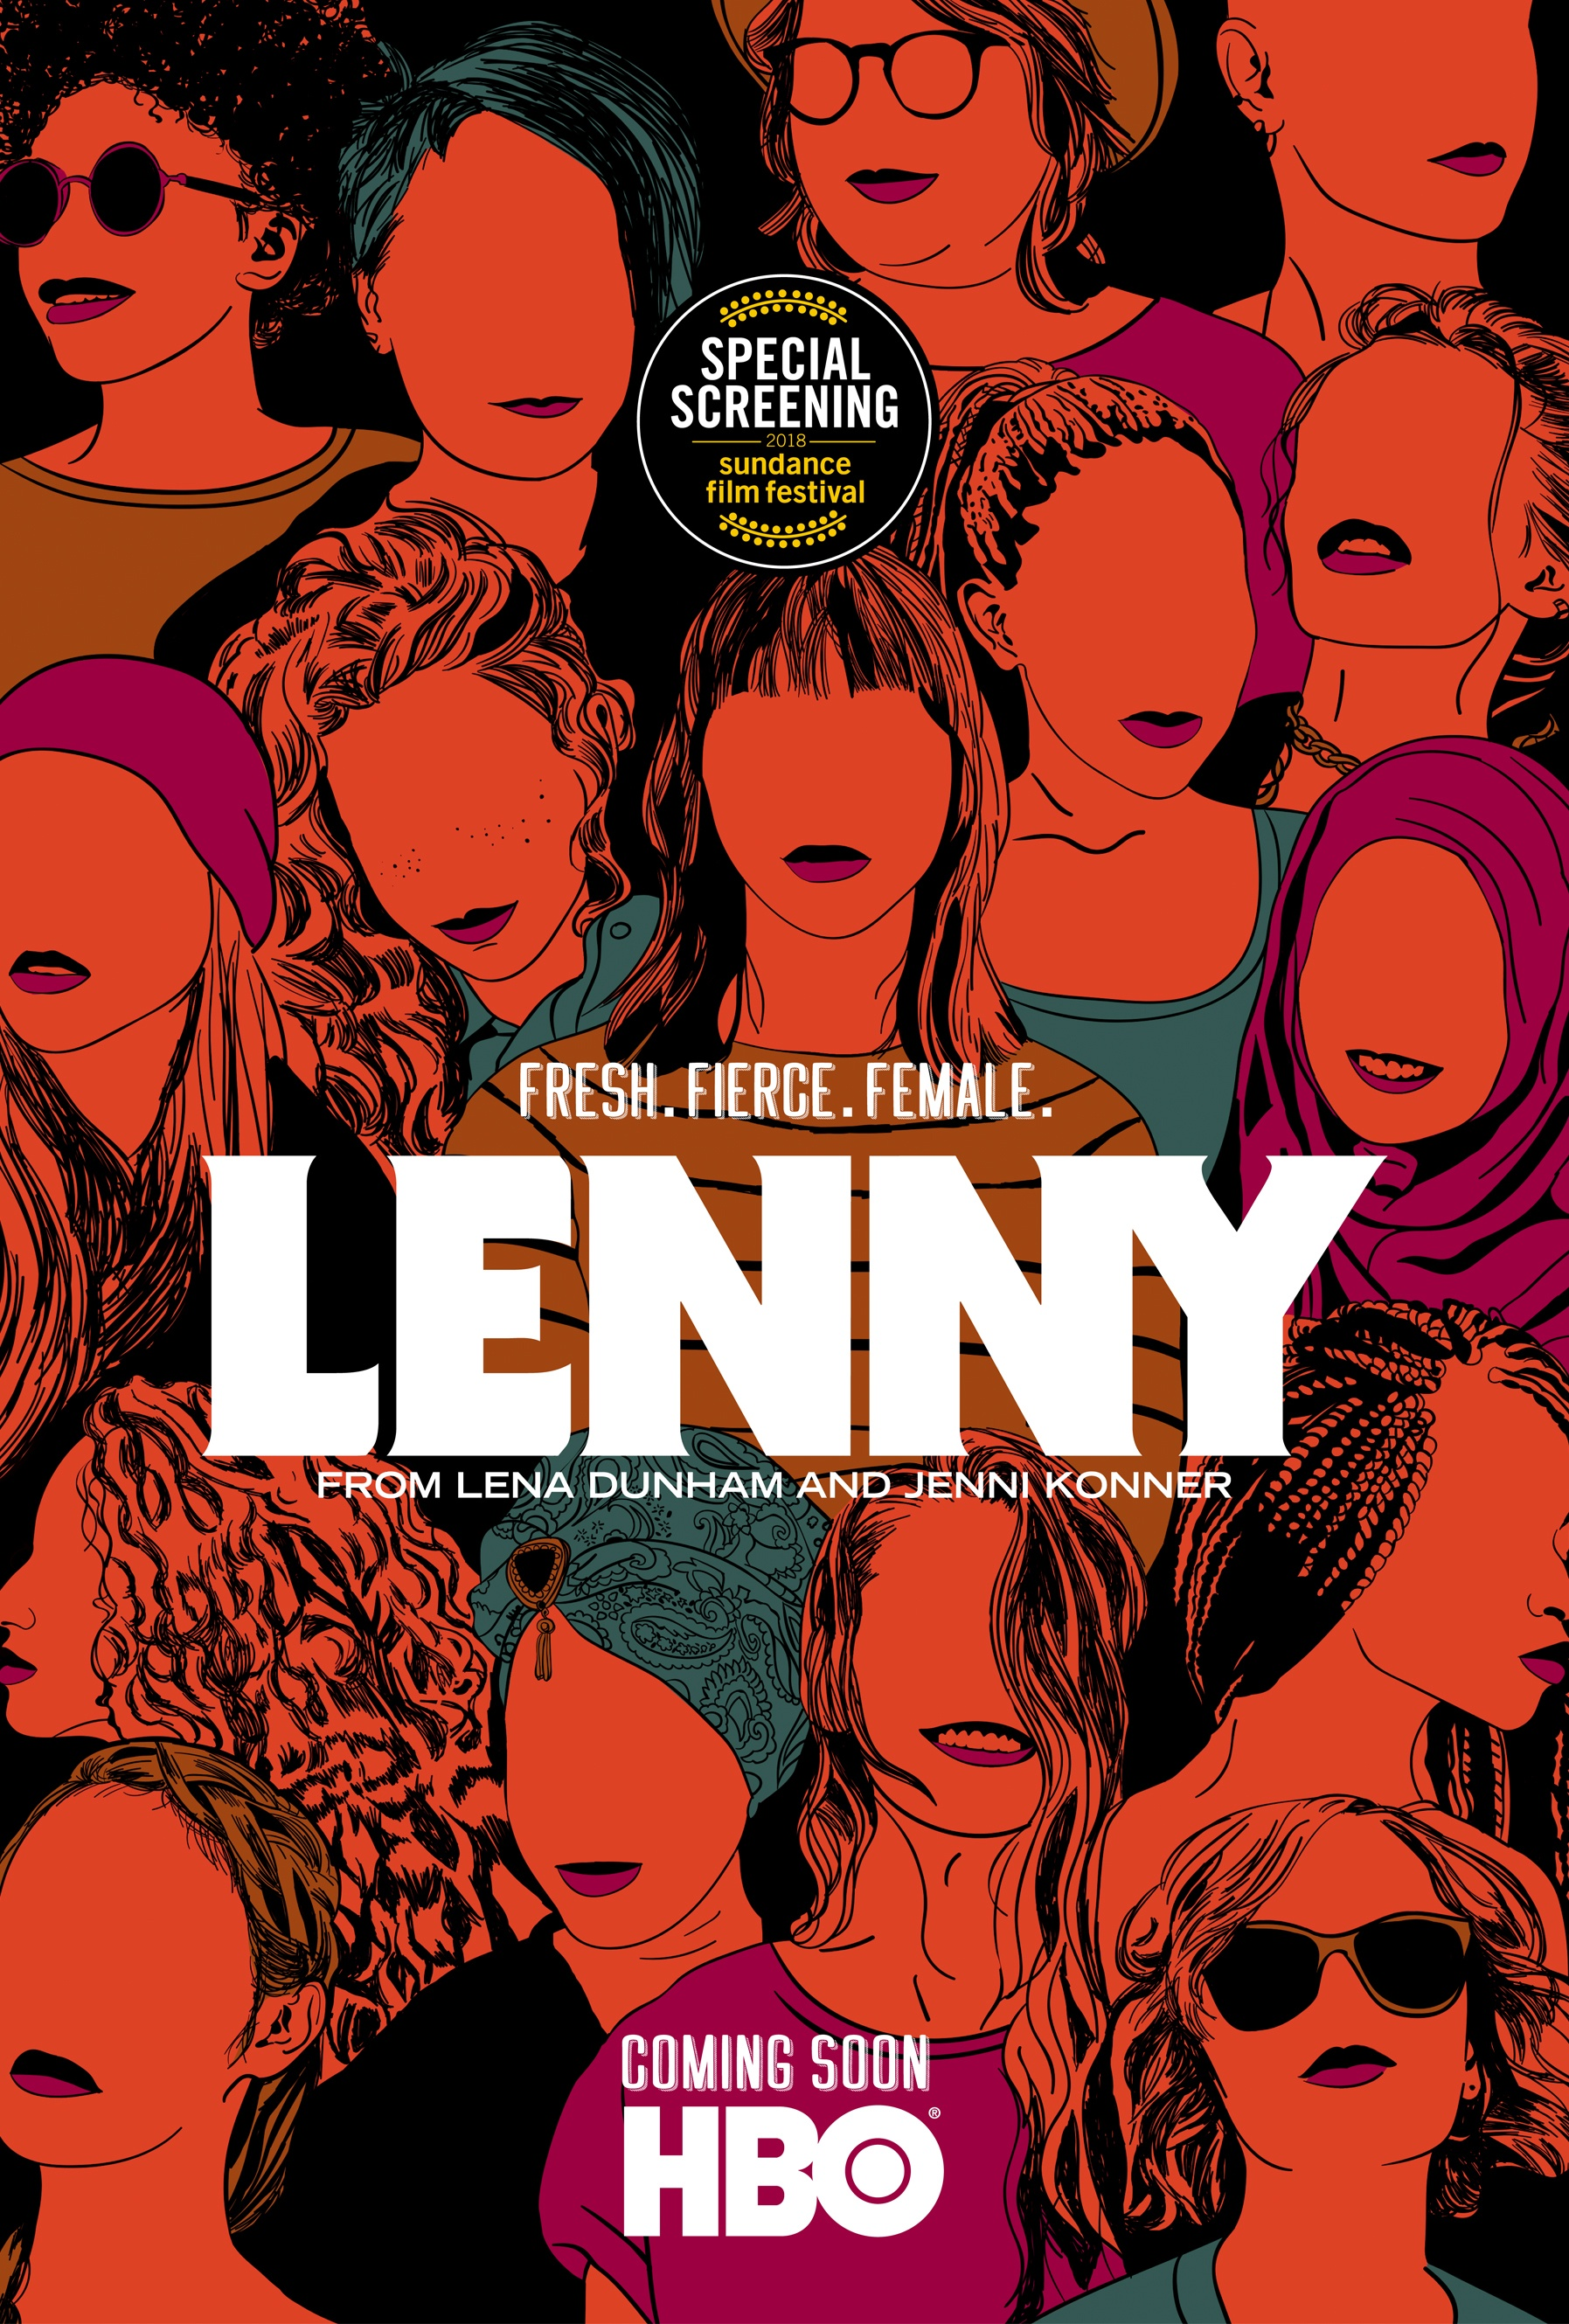 Image Media for Lenny